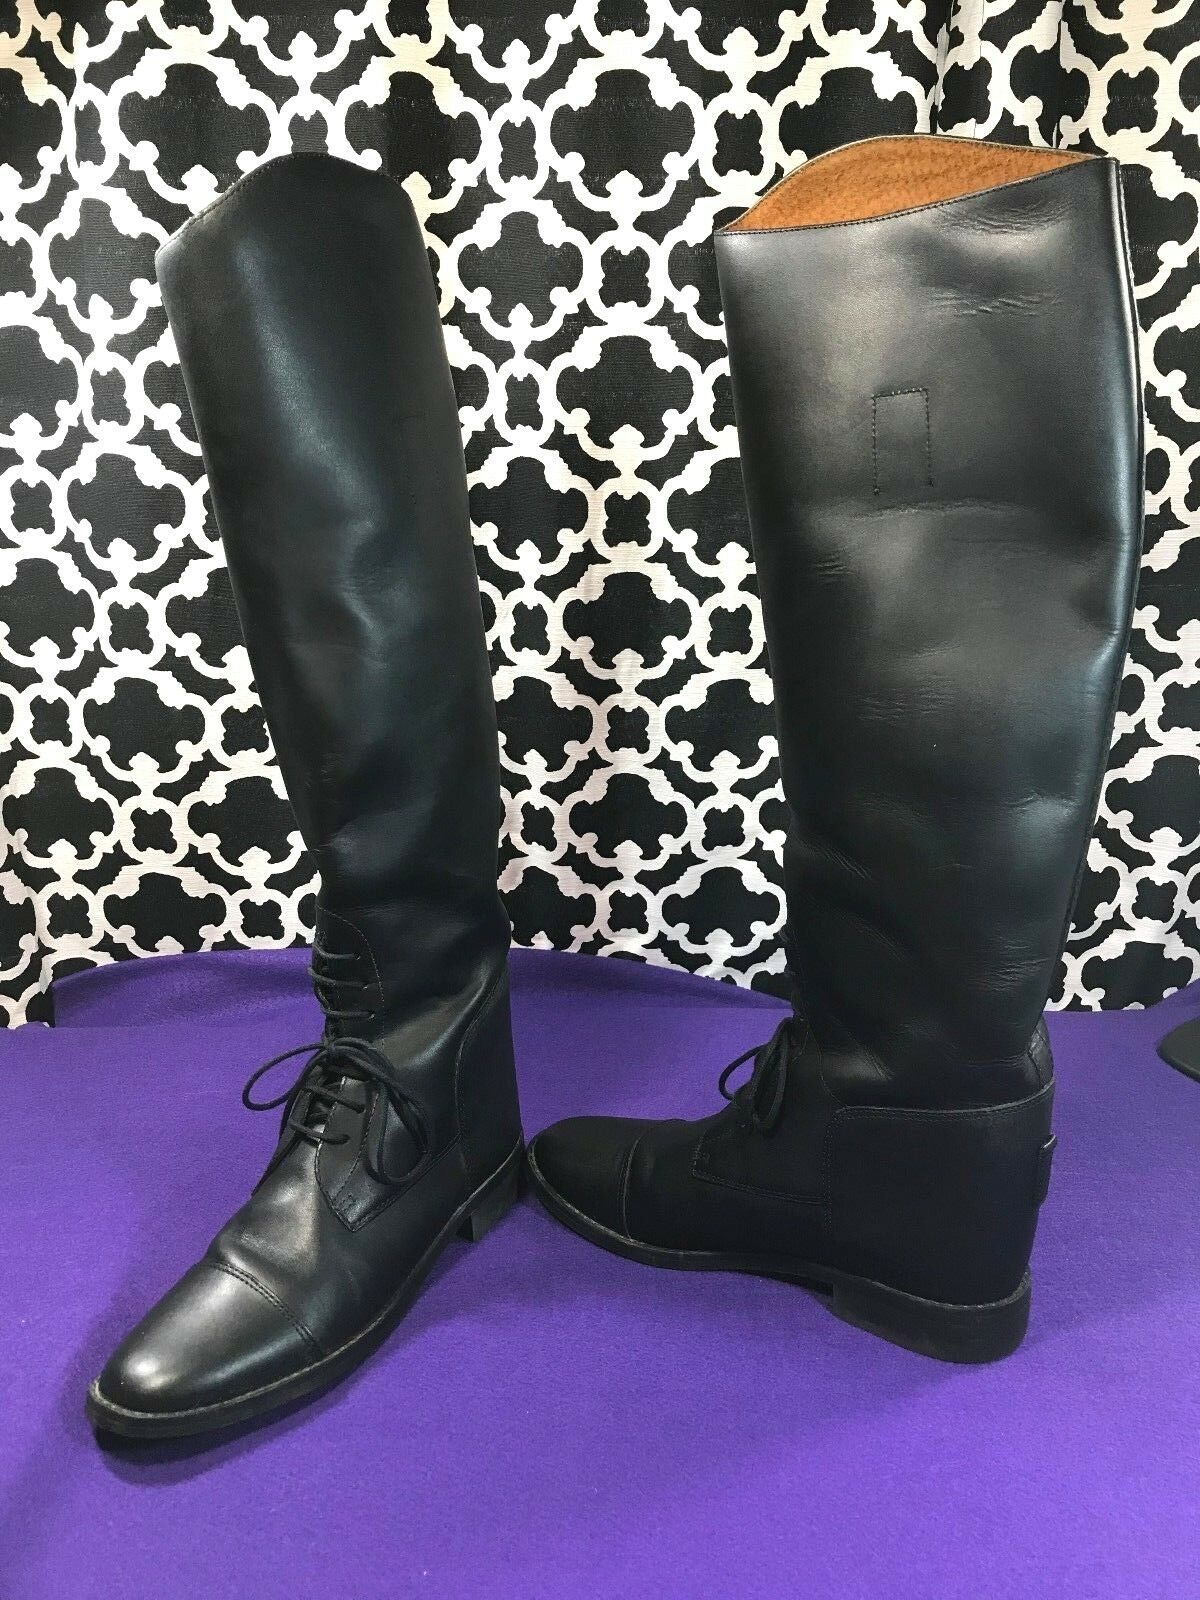 Amazonas Cavalier Tall English Leather Riding Boots - Sz. 8